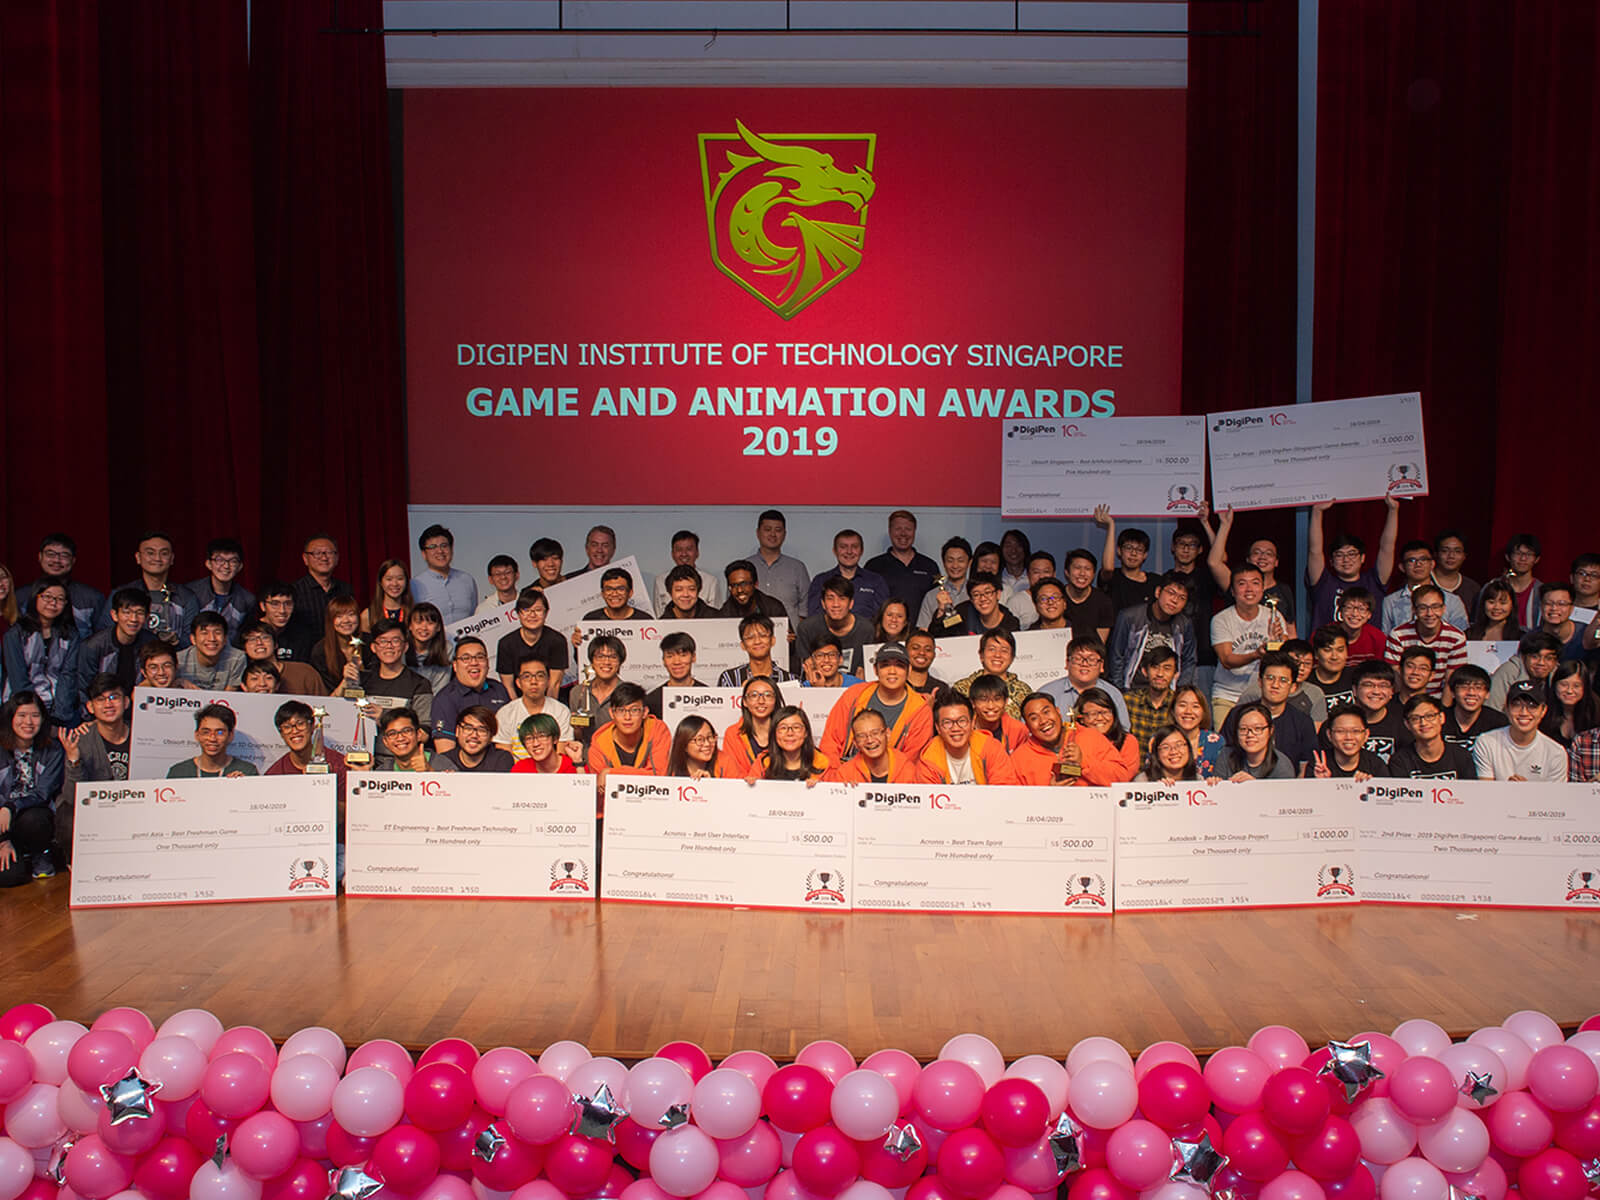 Four rows of students line up on stage to display their giant prize checks during the 2019 DigiPen Game and Animation Awards ceremony.